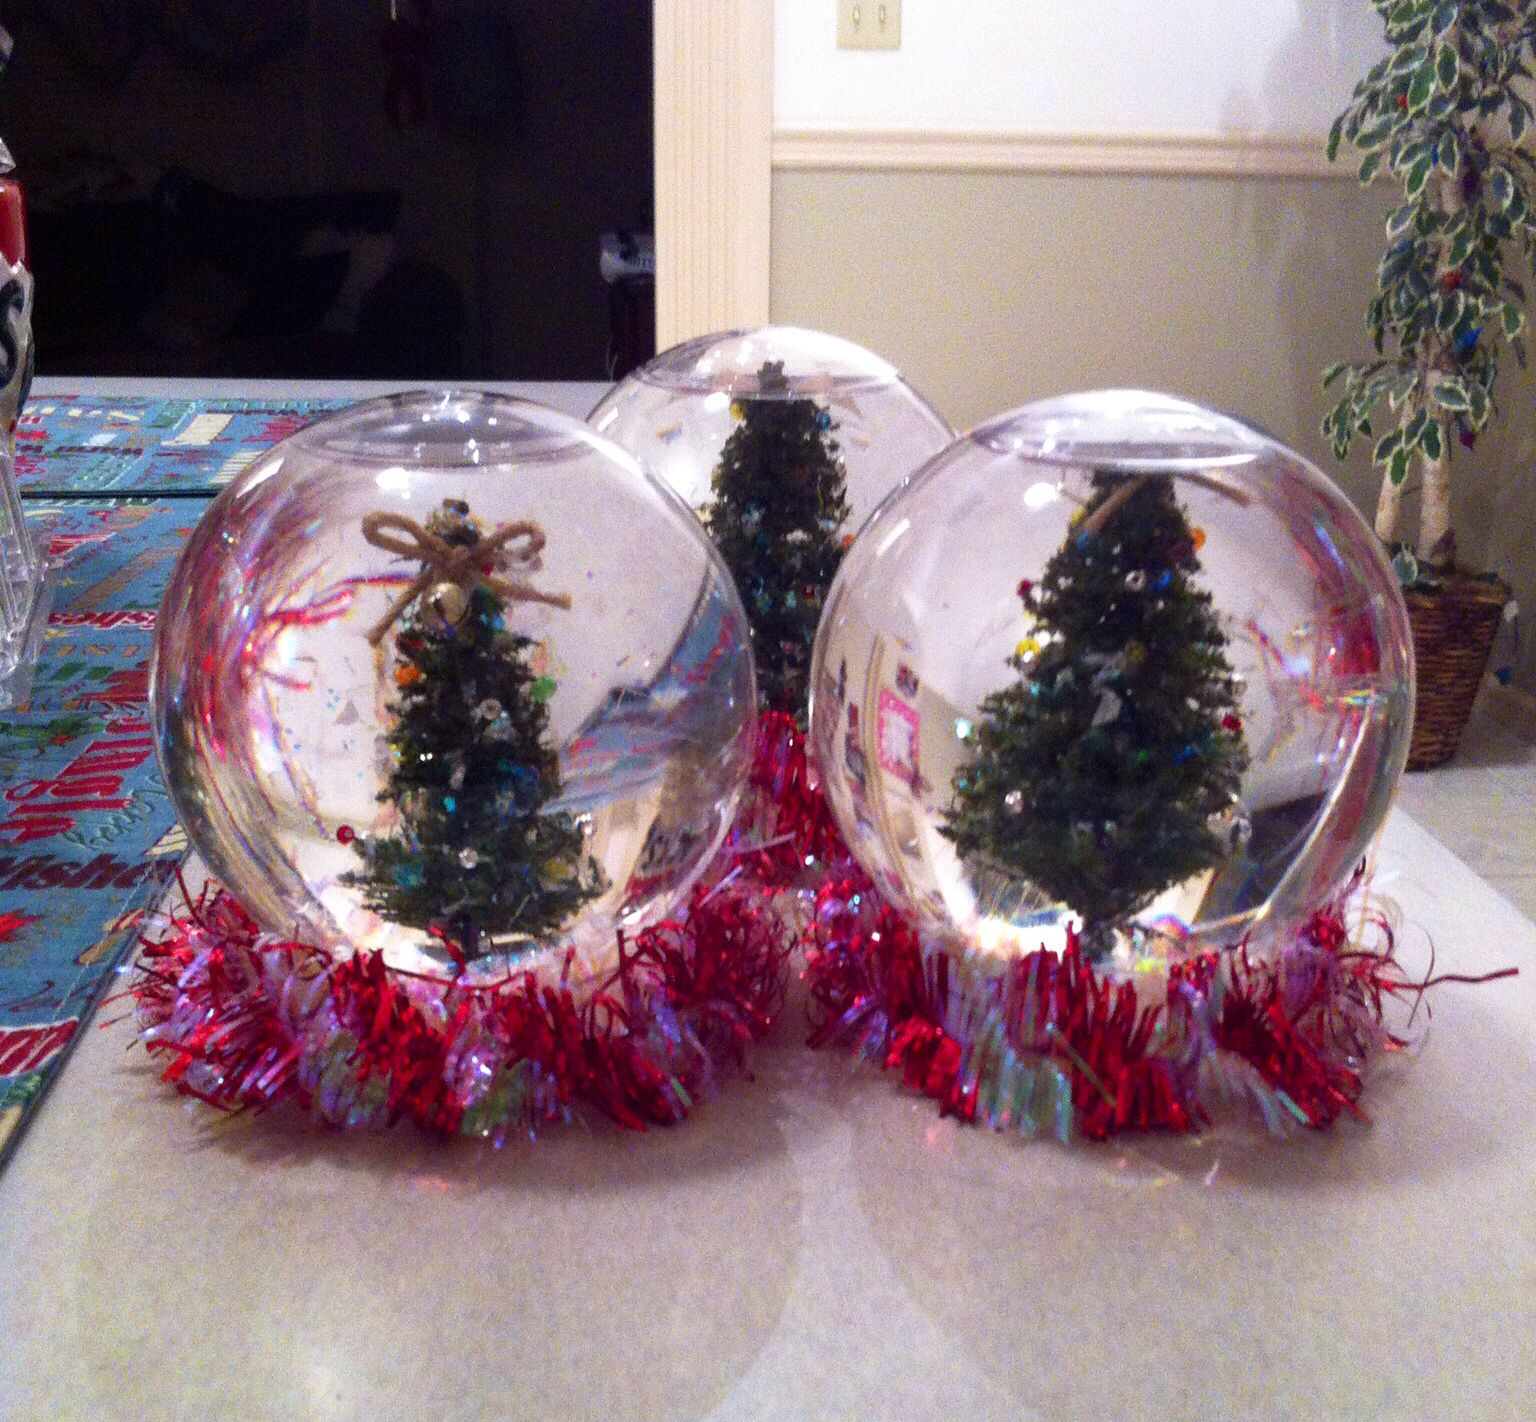 I fancied up the #diysnowglobe project by hot gluing ...